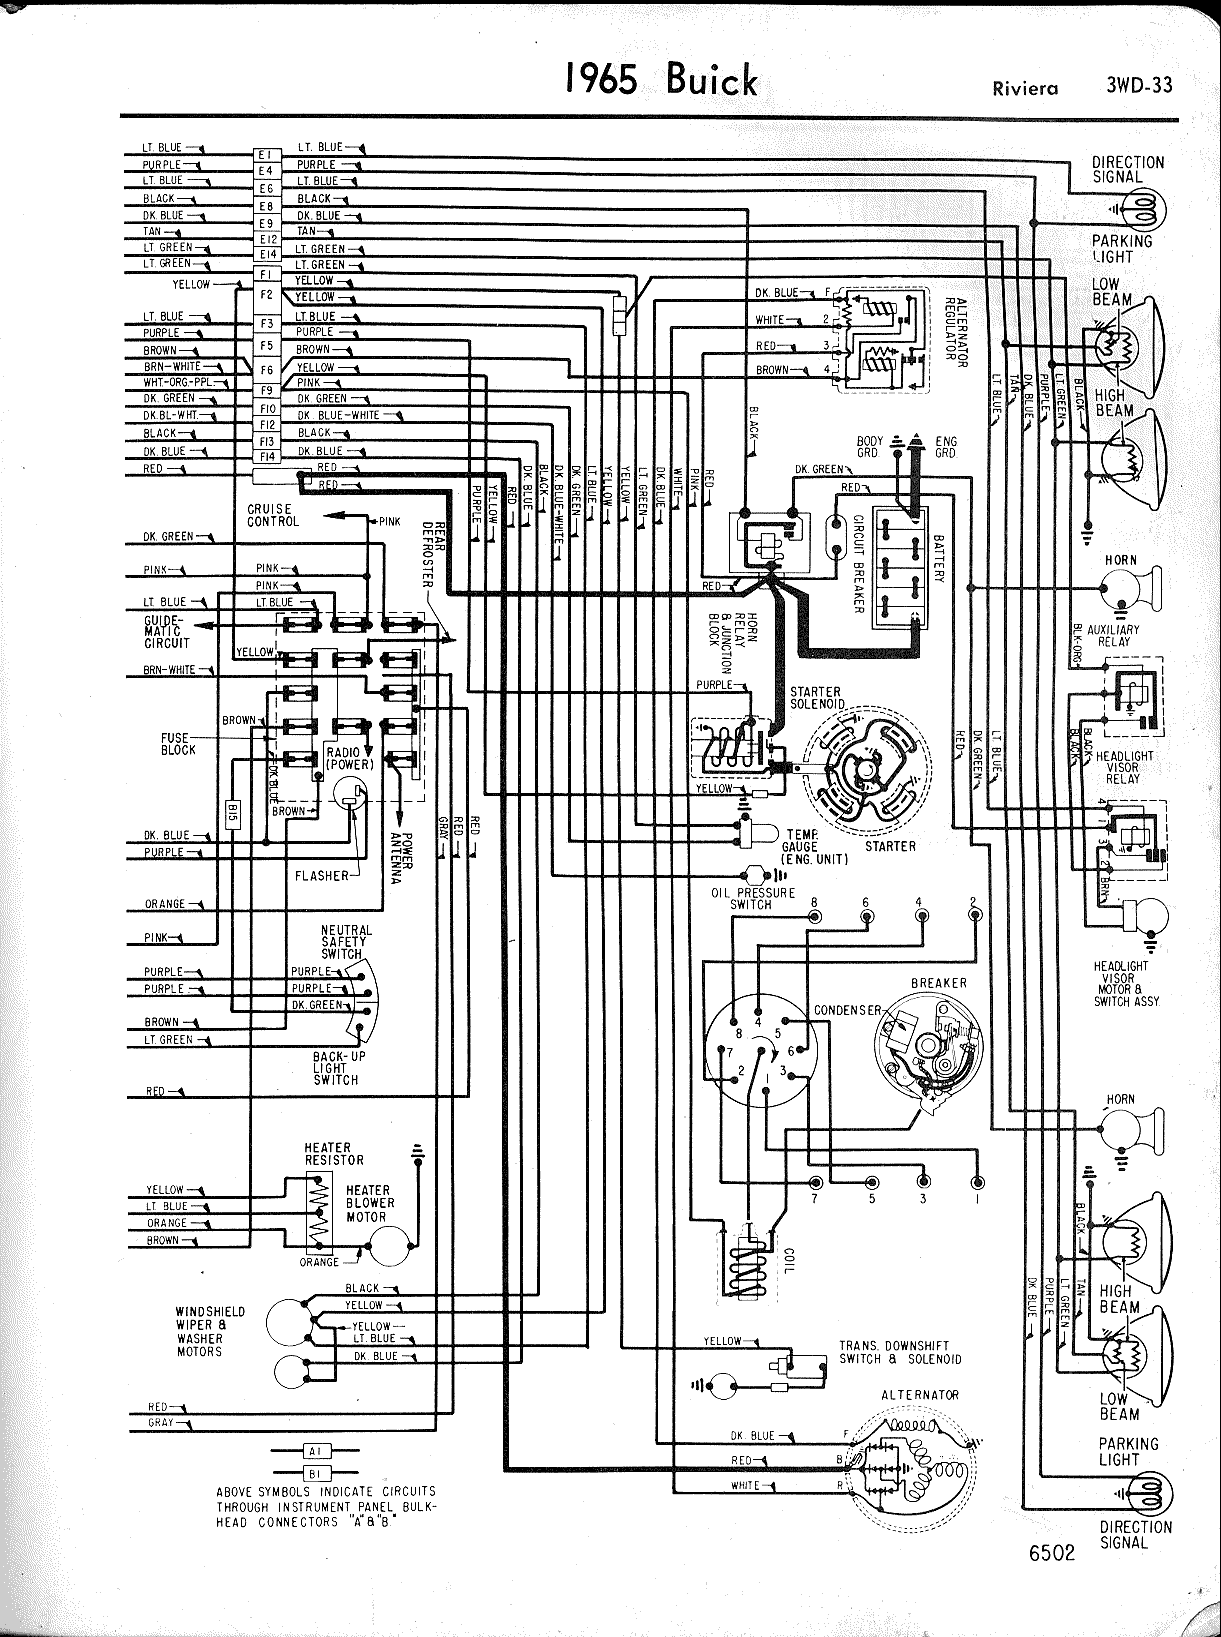 hight resolution of buick wiring diagrams 1957 1965 wiring diagrams 1965 buick wildcat 1965 riviera right half 64 buick